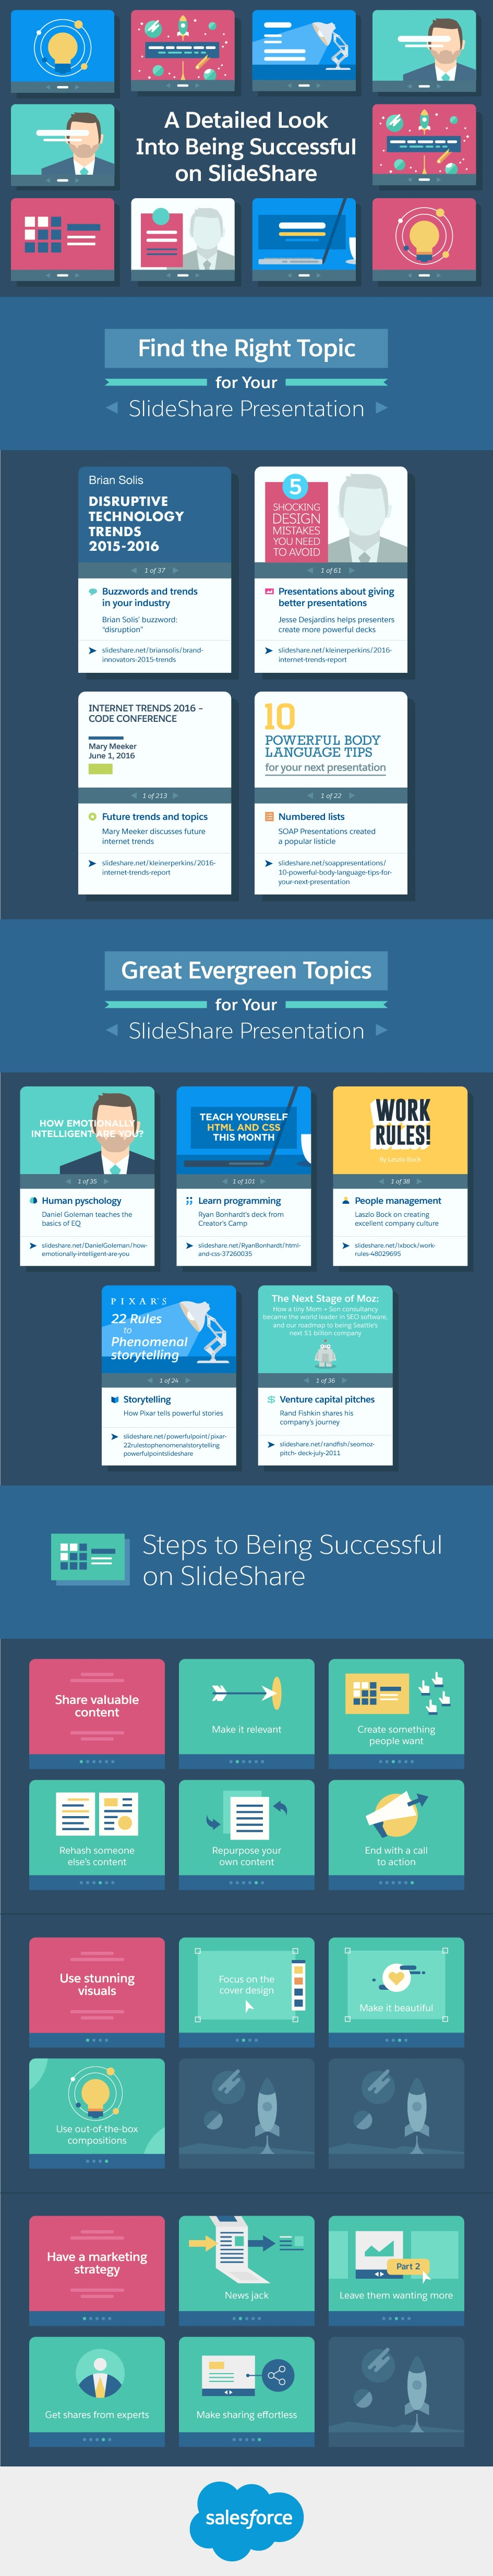 A Detailed Look Into Being Successful on SlideShare [Infographic] | Social Media Today